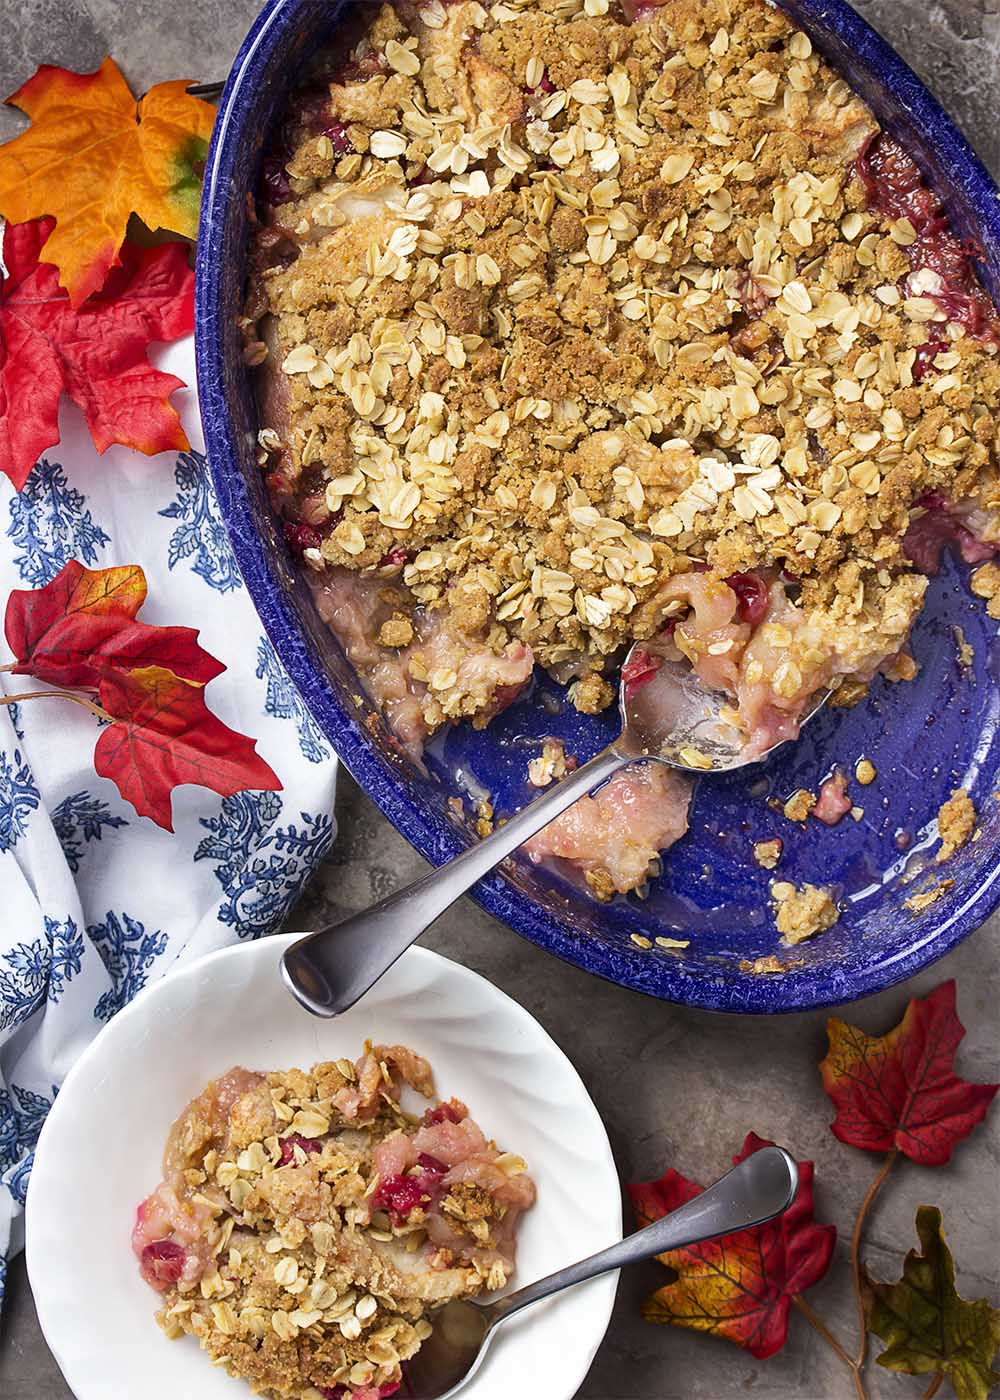 Top view of the baked apple cranberry crisp in a rustic blue oval baking dish with one bowl of crisp scooped out.